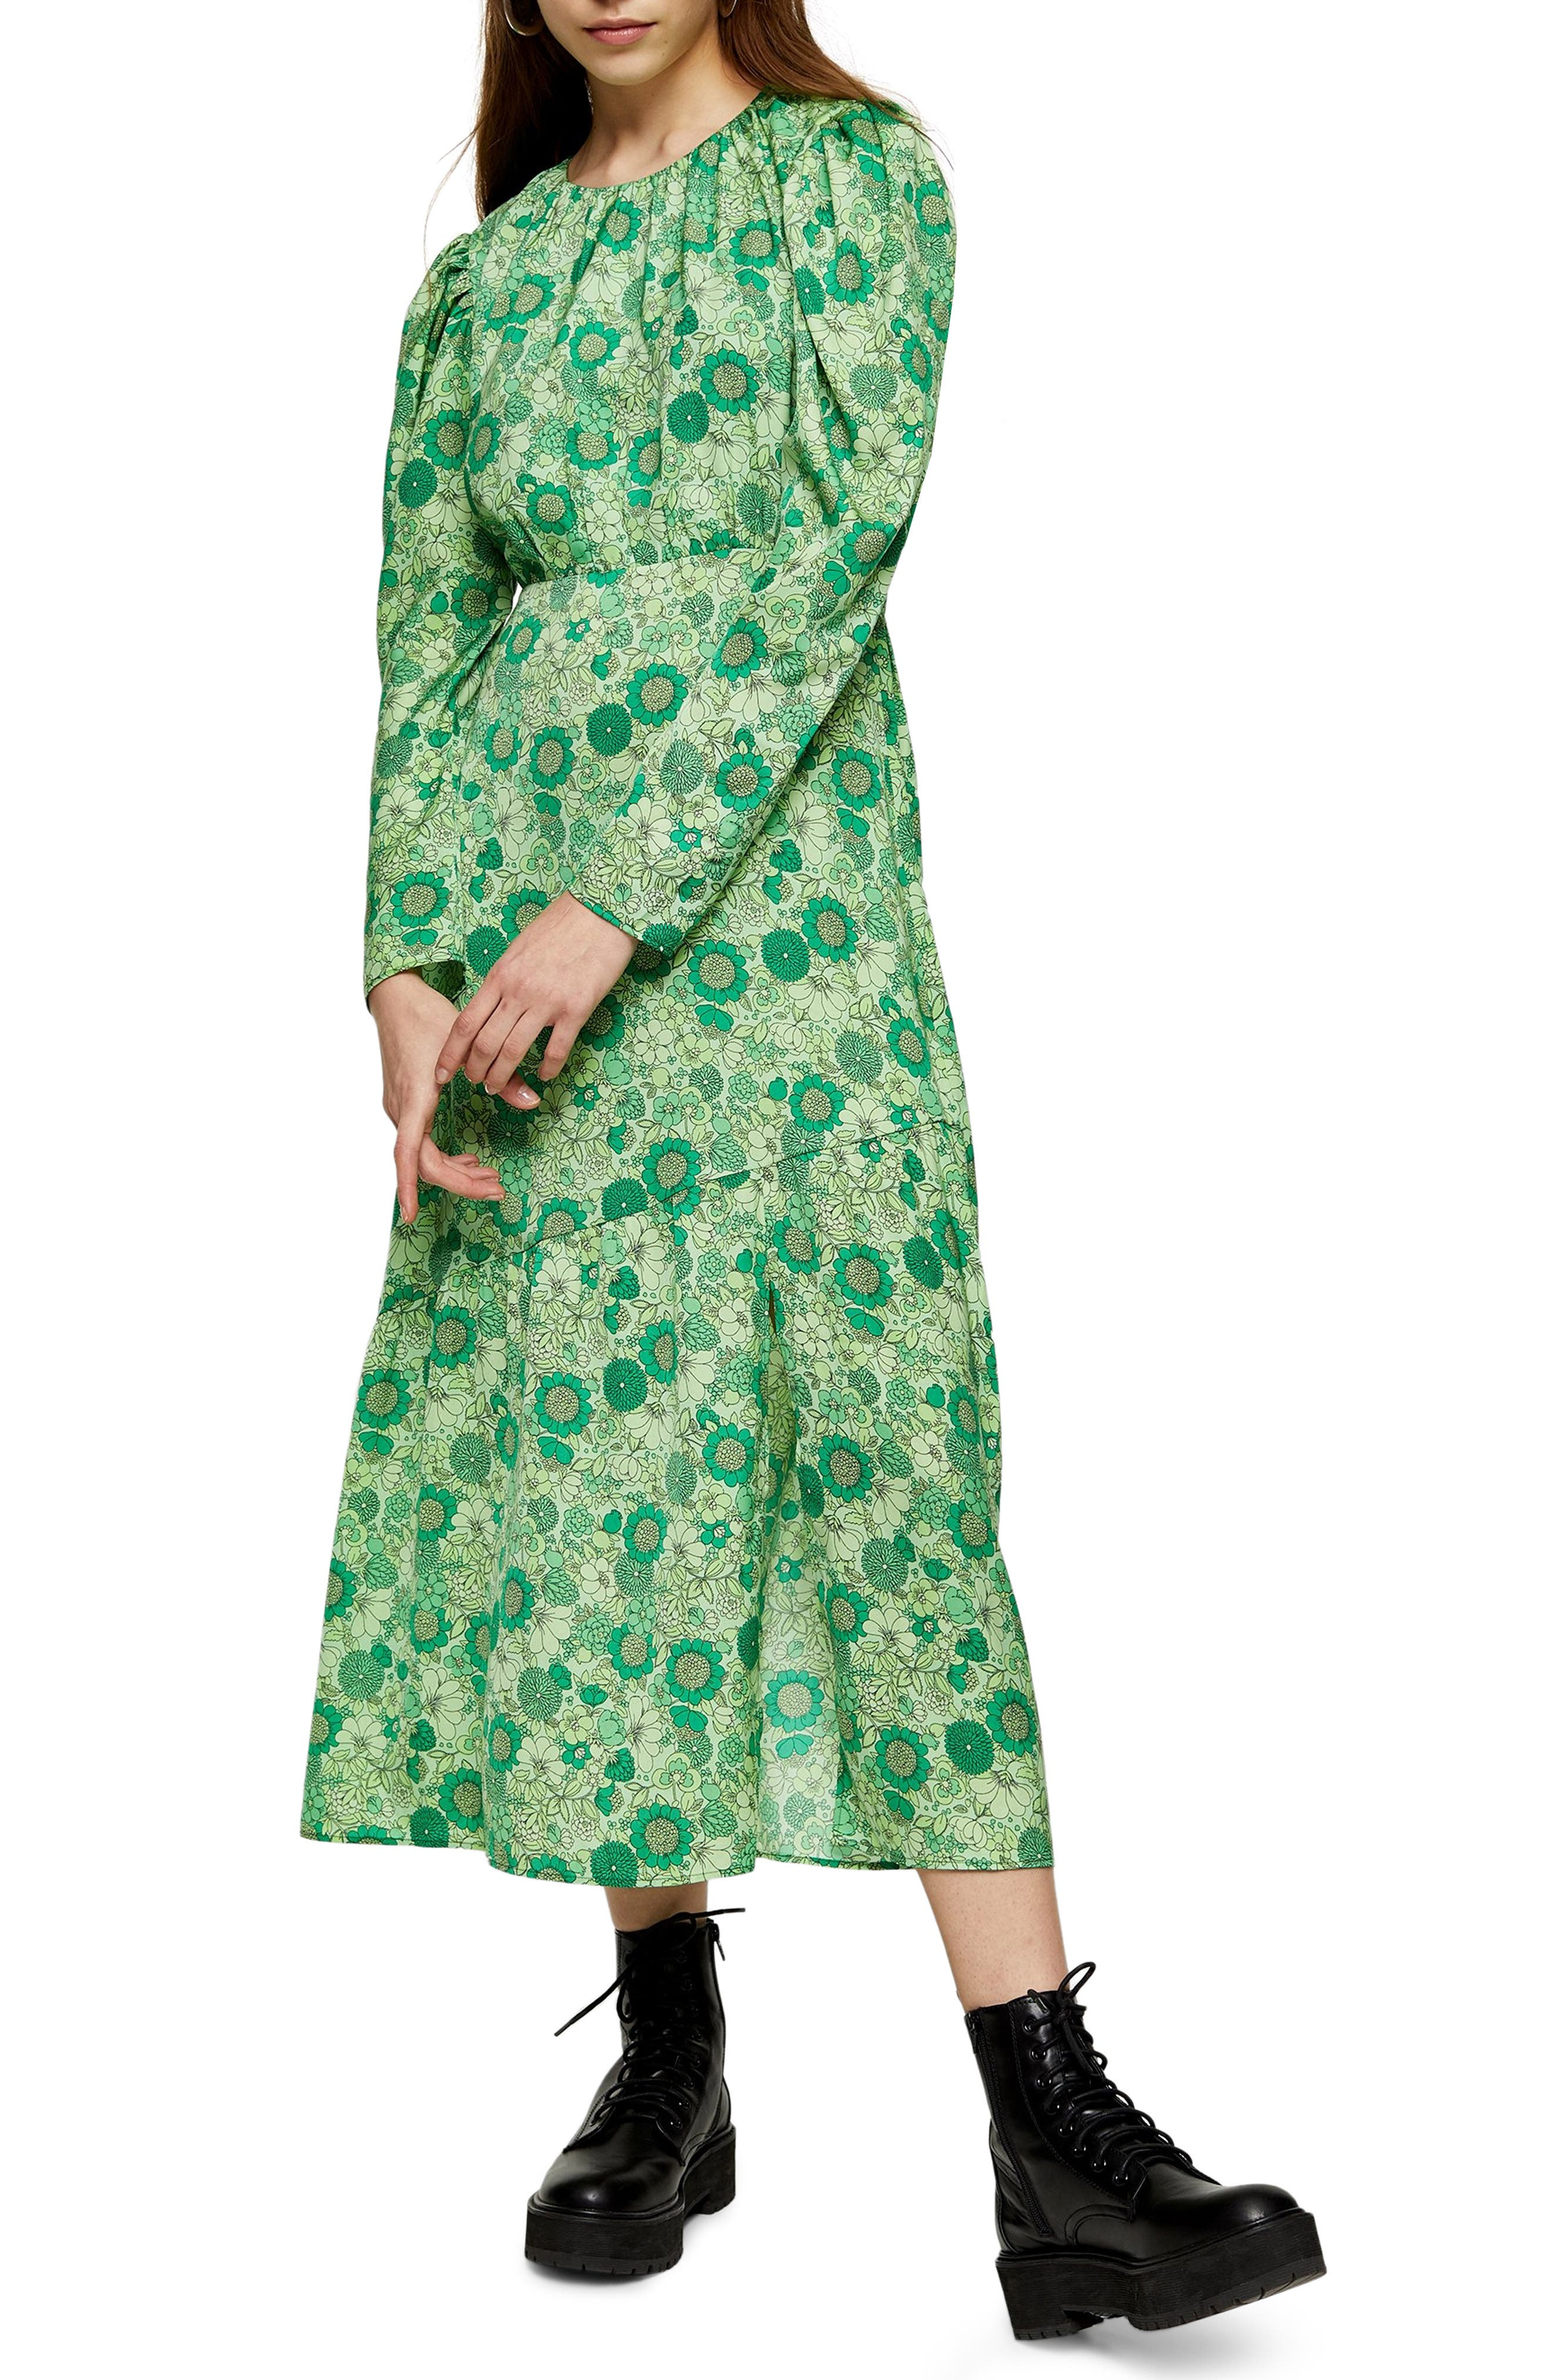 New Womens Ex Topshop Green/&White Ditsy Floral Print Jersey Midi Dress Size 4-14